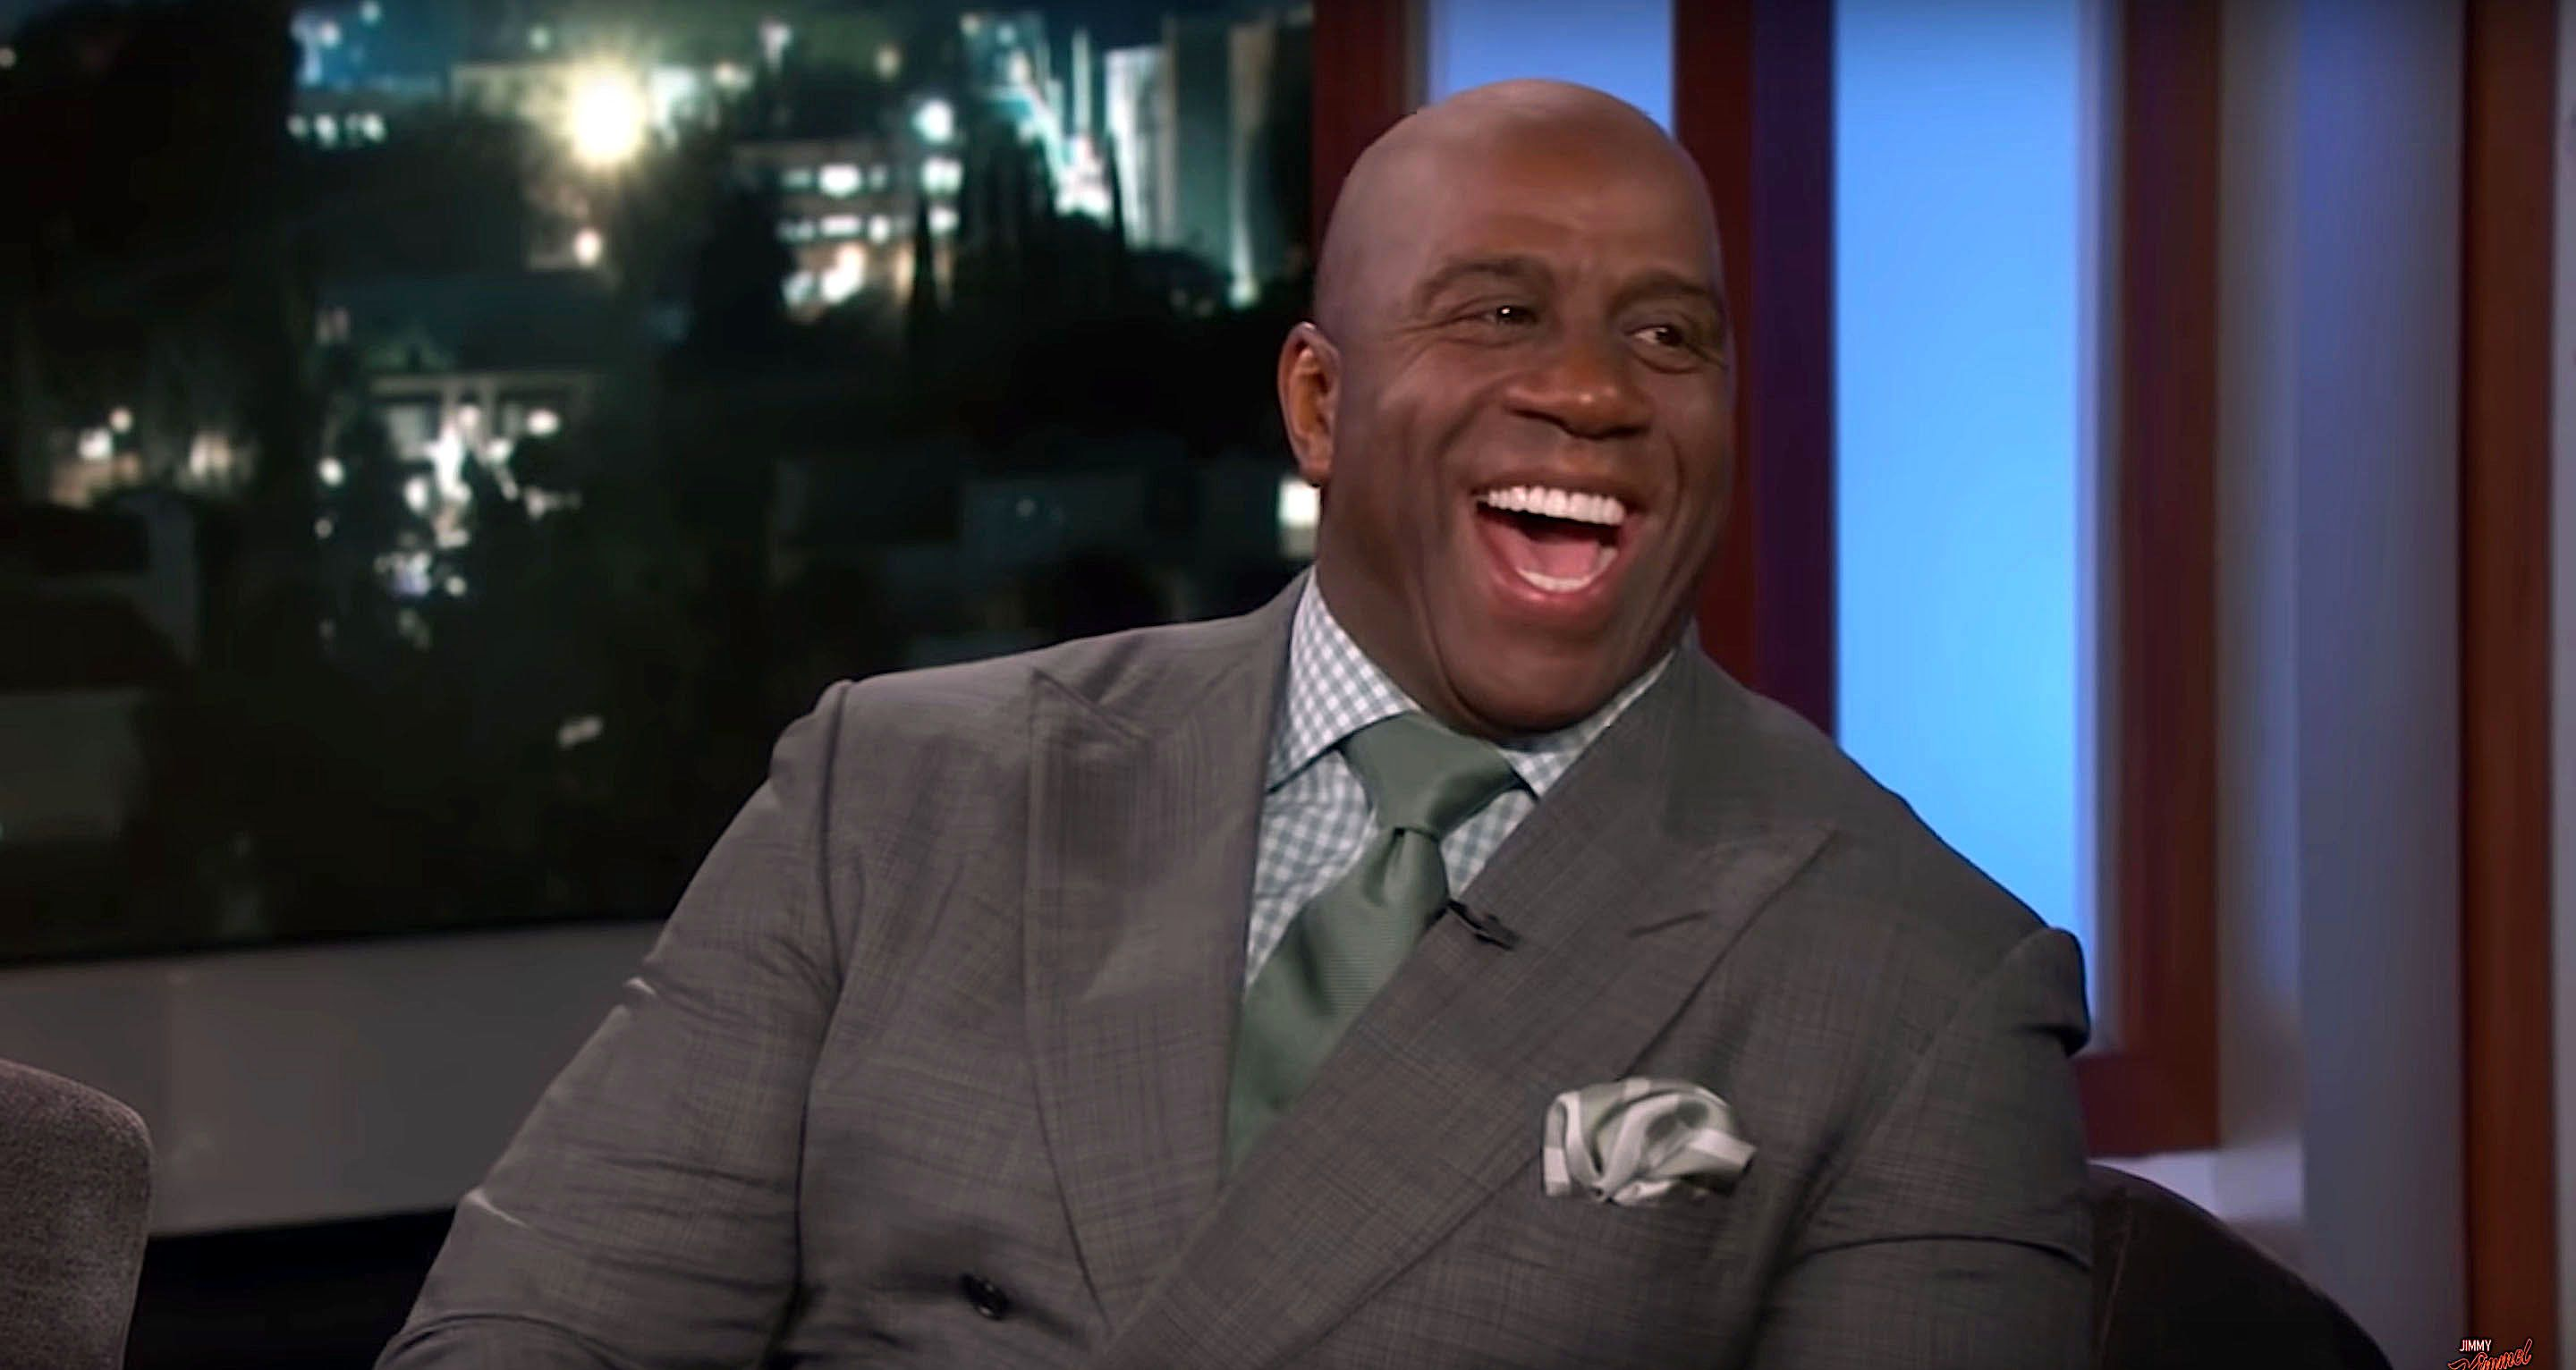 Magic Johnson told Jimmy Kimmel about signing LeBron James to the Lakers